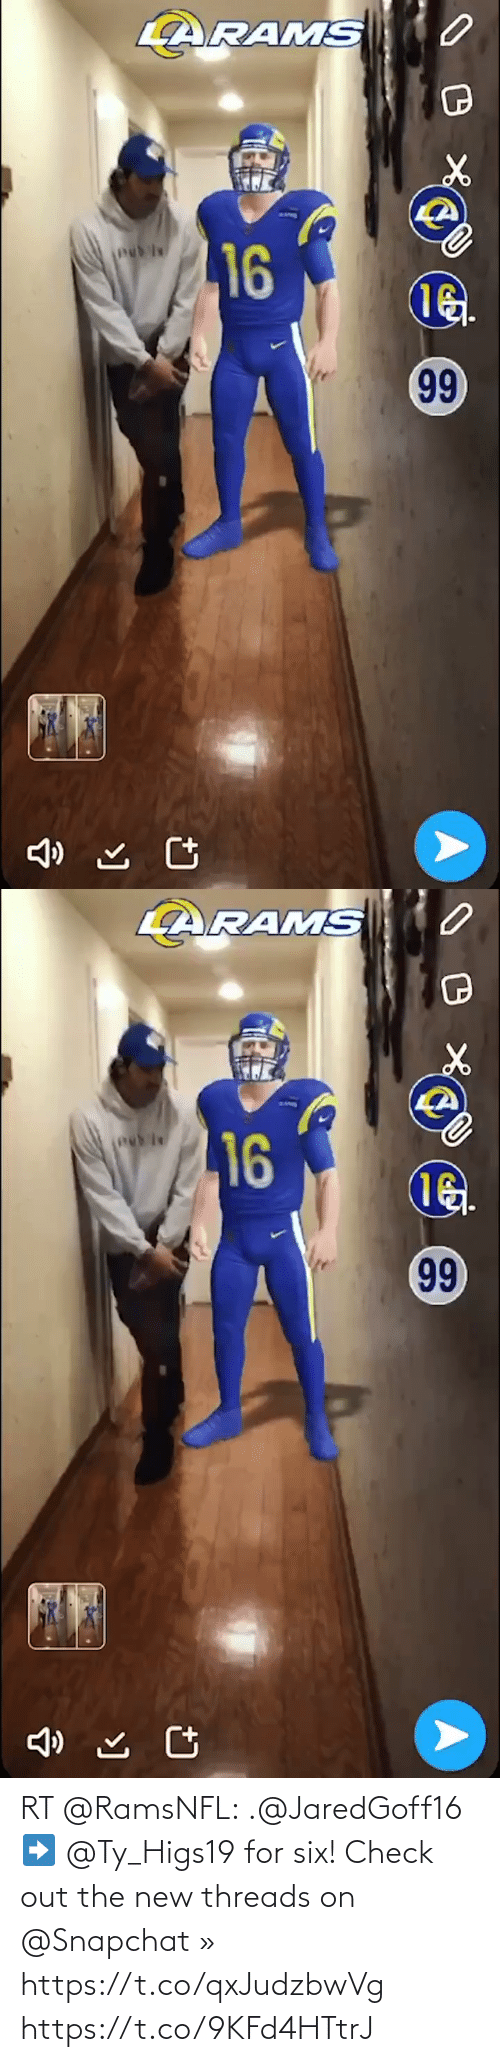 Snapchat: RT @RamsNFL: .@JaredGoff16 ➡️ @Ty_Higs19 for six!   Check out the new threads on @Snapchat » https://t.co/qxJudzbwVg https://t.co/9KFd4HTtrJ